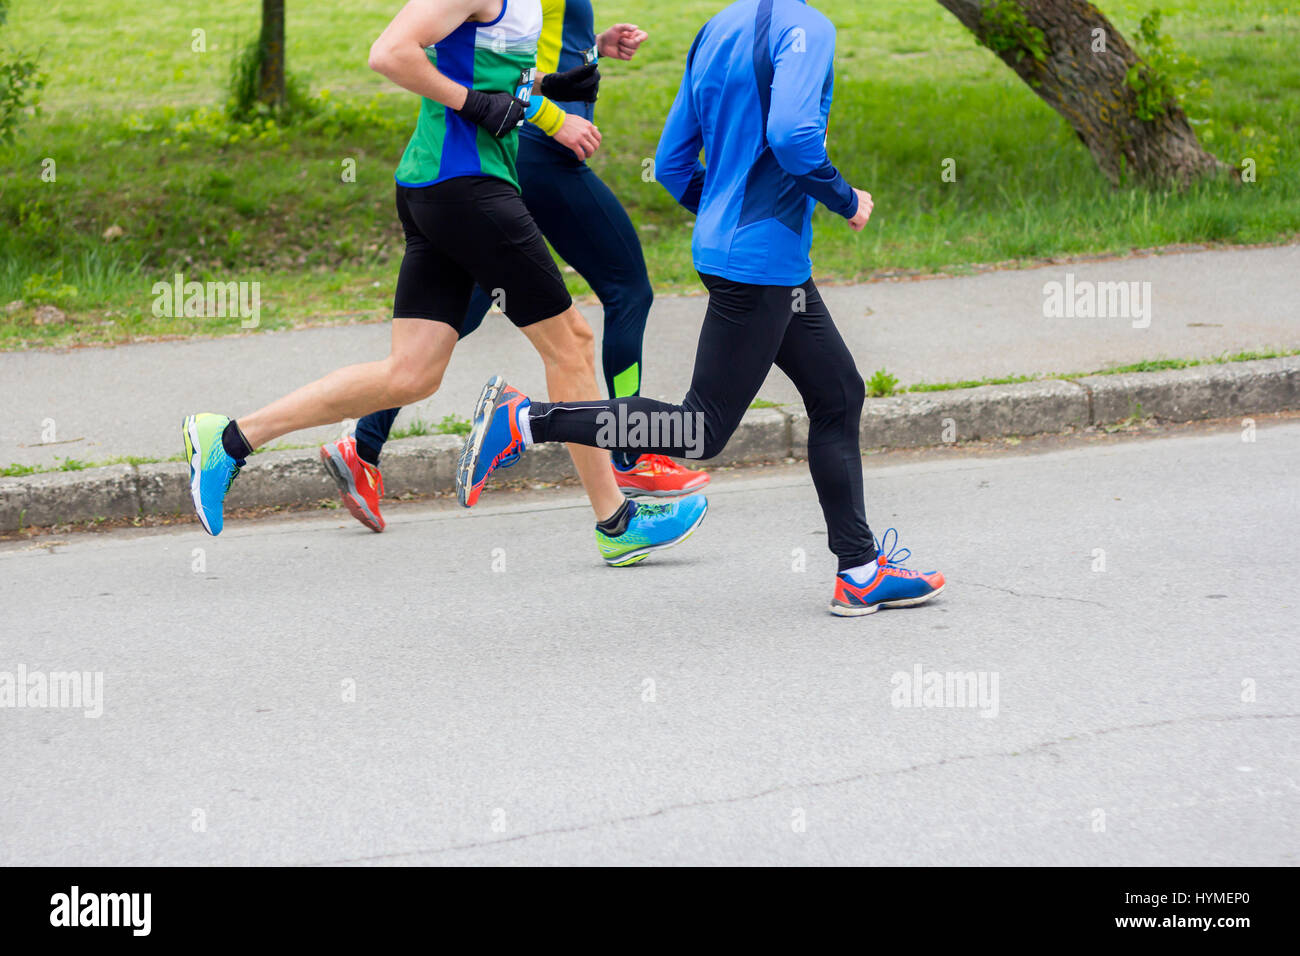 Marathon running race, three runners on city road - Stock Image